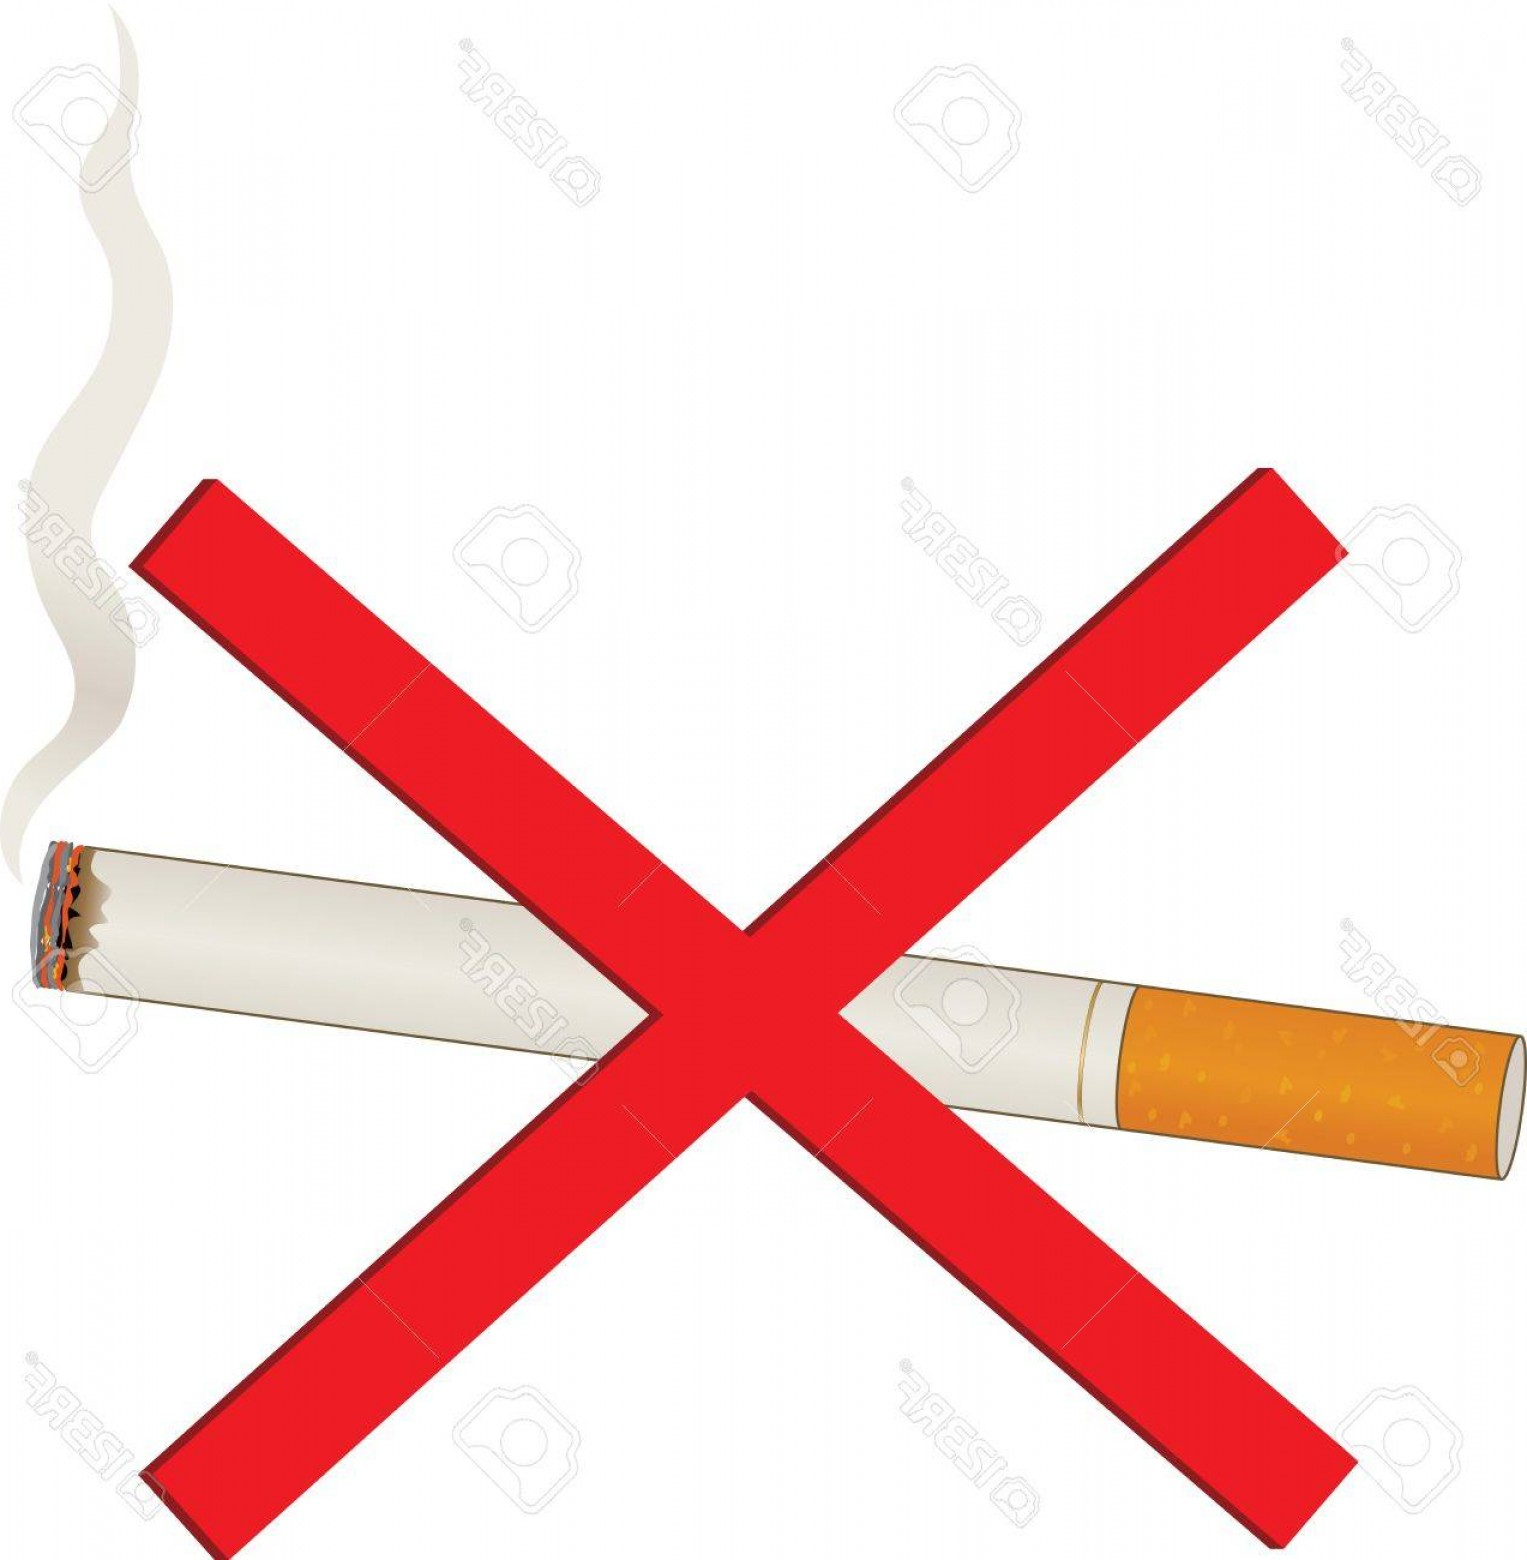 Billow Smoke Vector: Photoa Single Lit Cigarette With A Billow Of Smoke And A Red Cross Over It